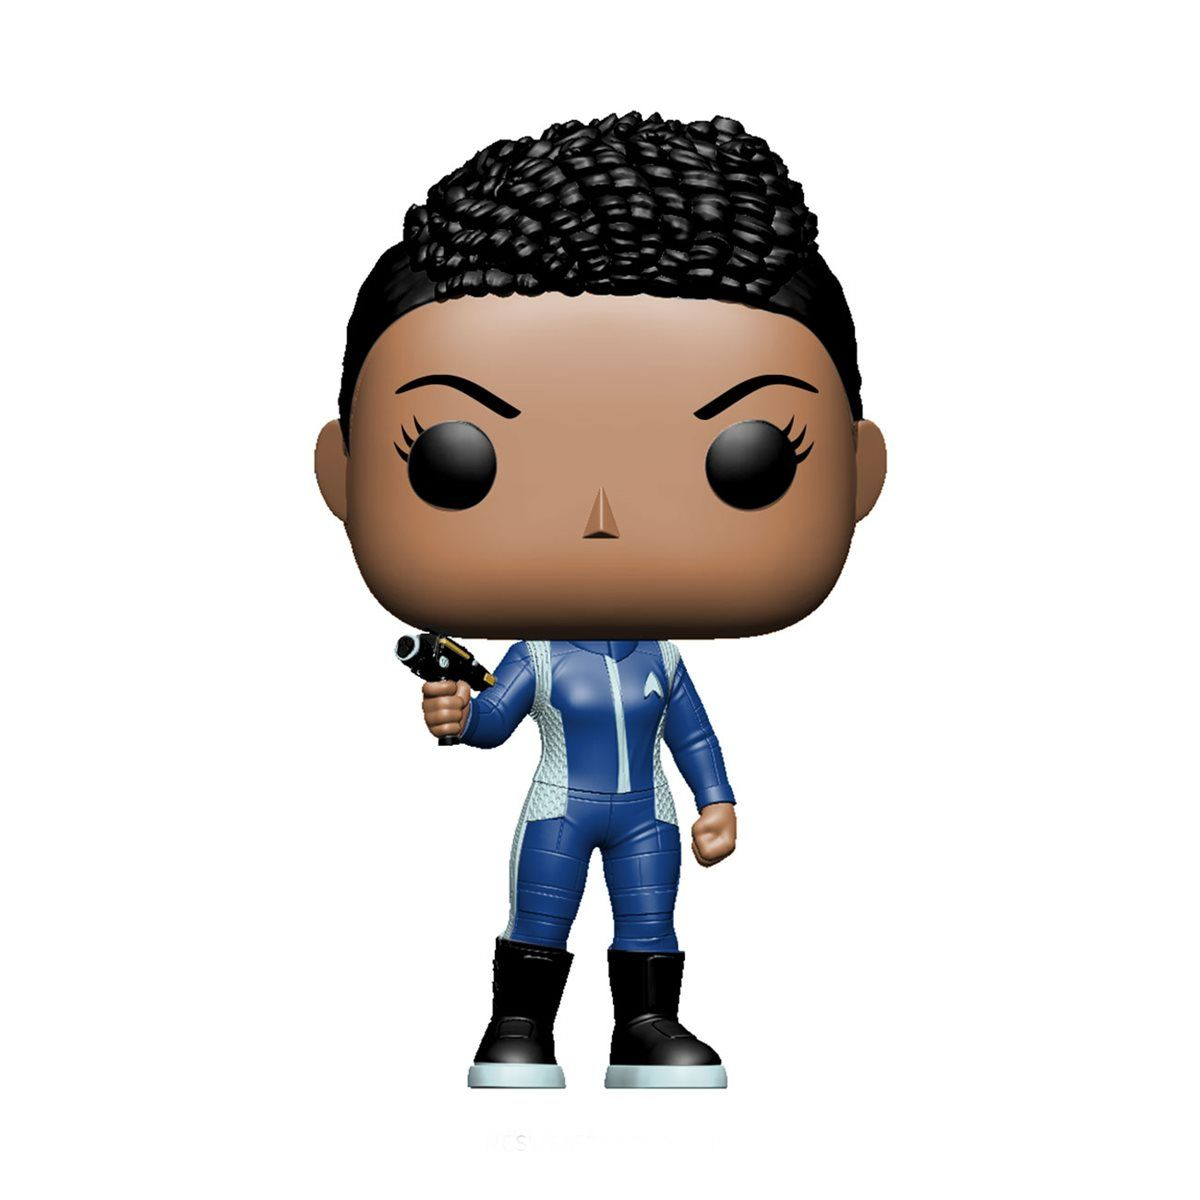 PRÉ VENDA: Funko Pop! Michael Burnham: Star Trek - Discovery - Funko